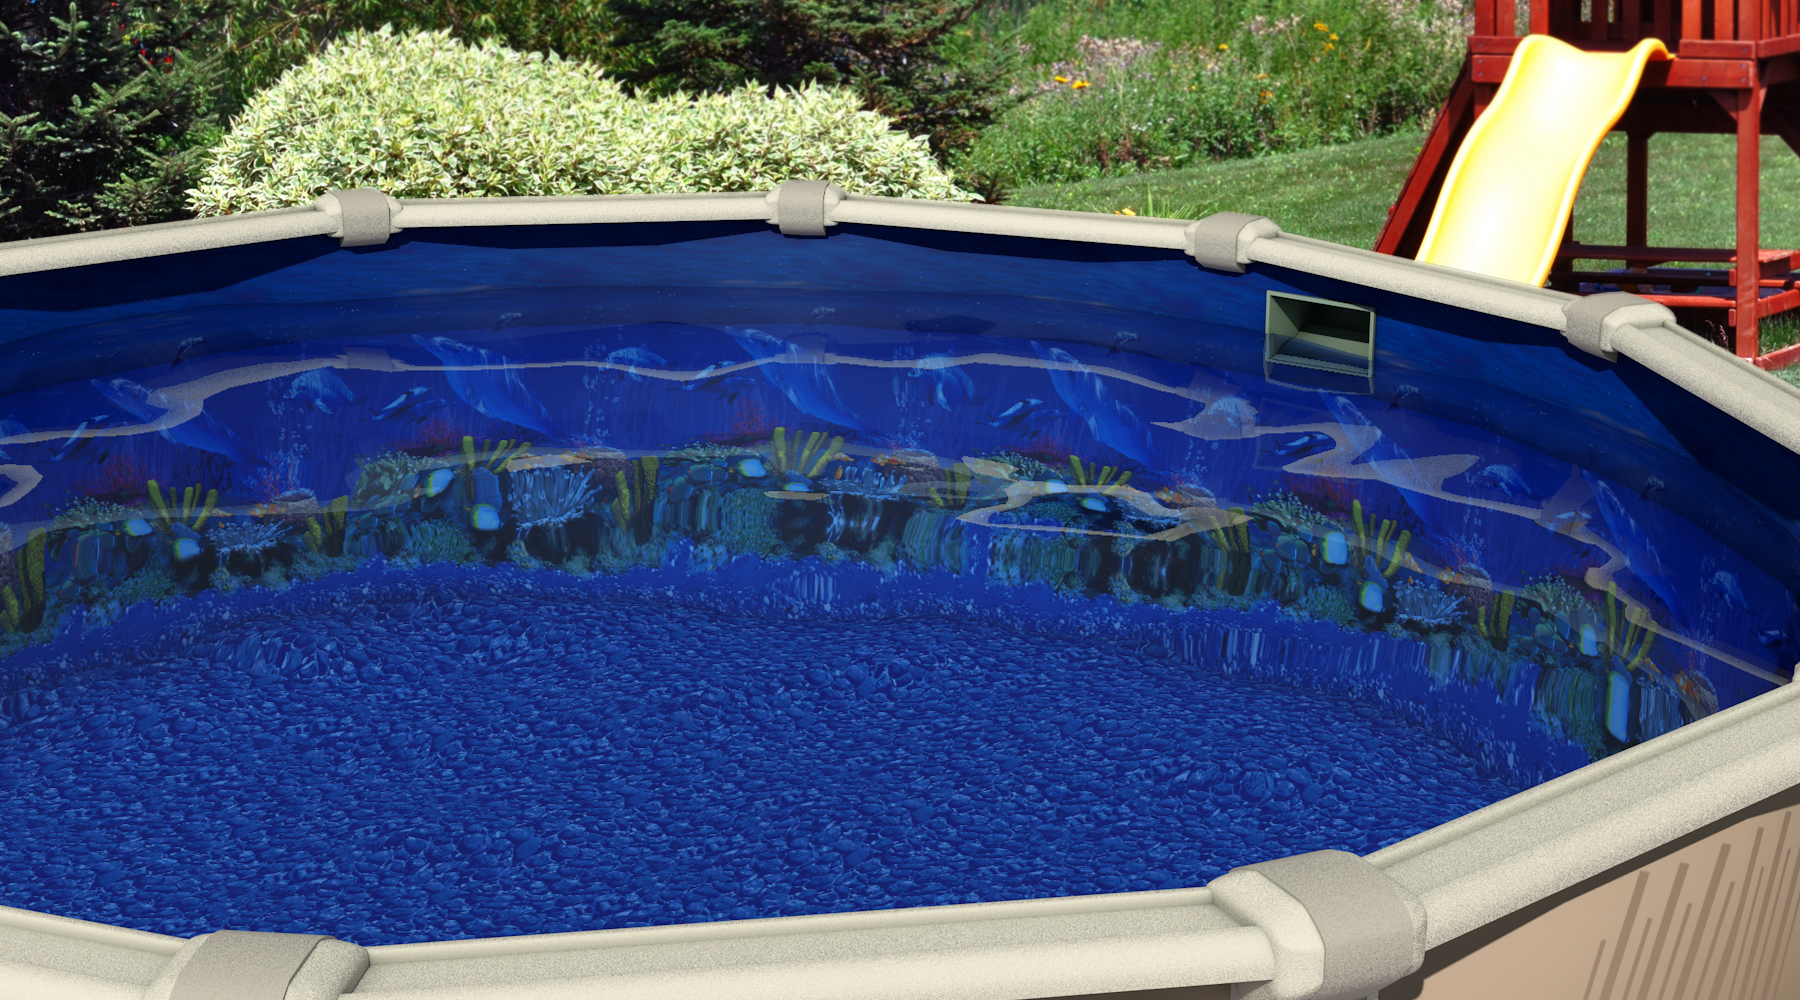 24-Foot Round Overlap Antilles Dolphin Above Ground Swimming Pool Liner -  48-Inch-or-52-Inch Wall Height - 25 Gauge